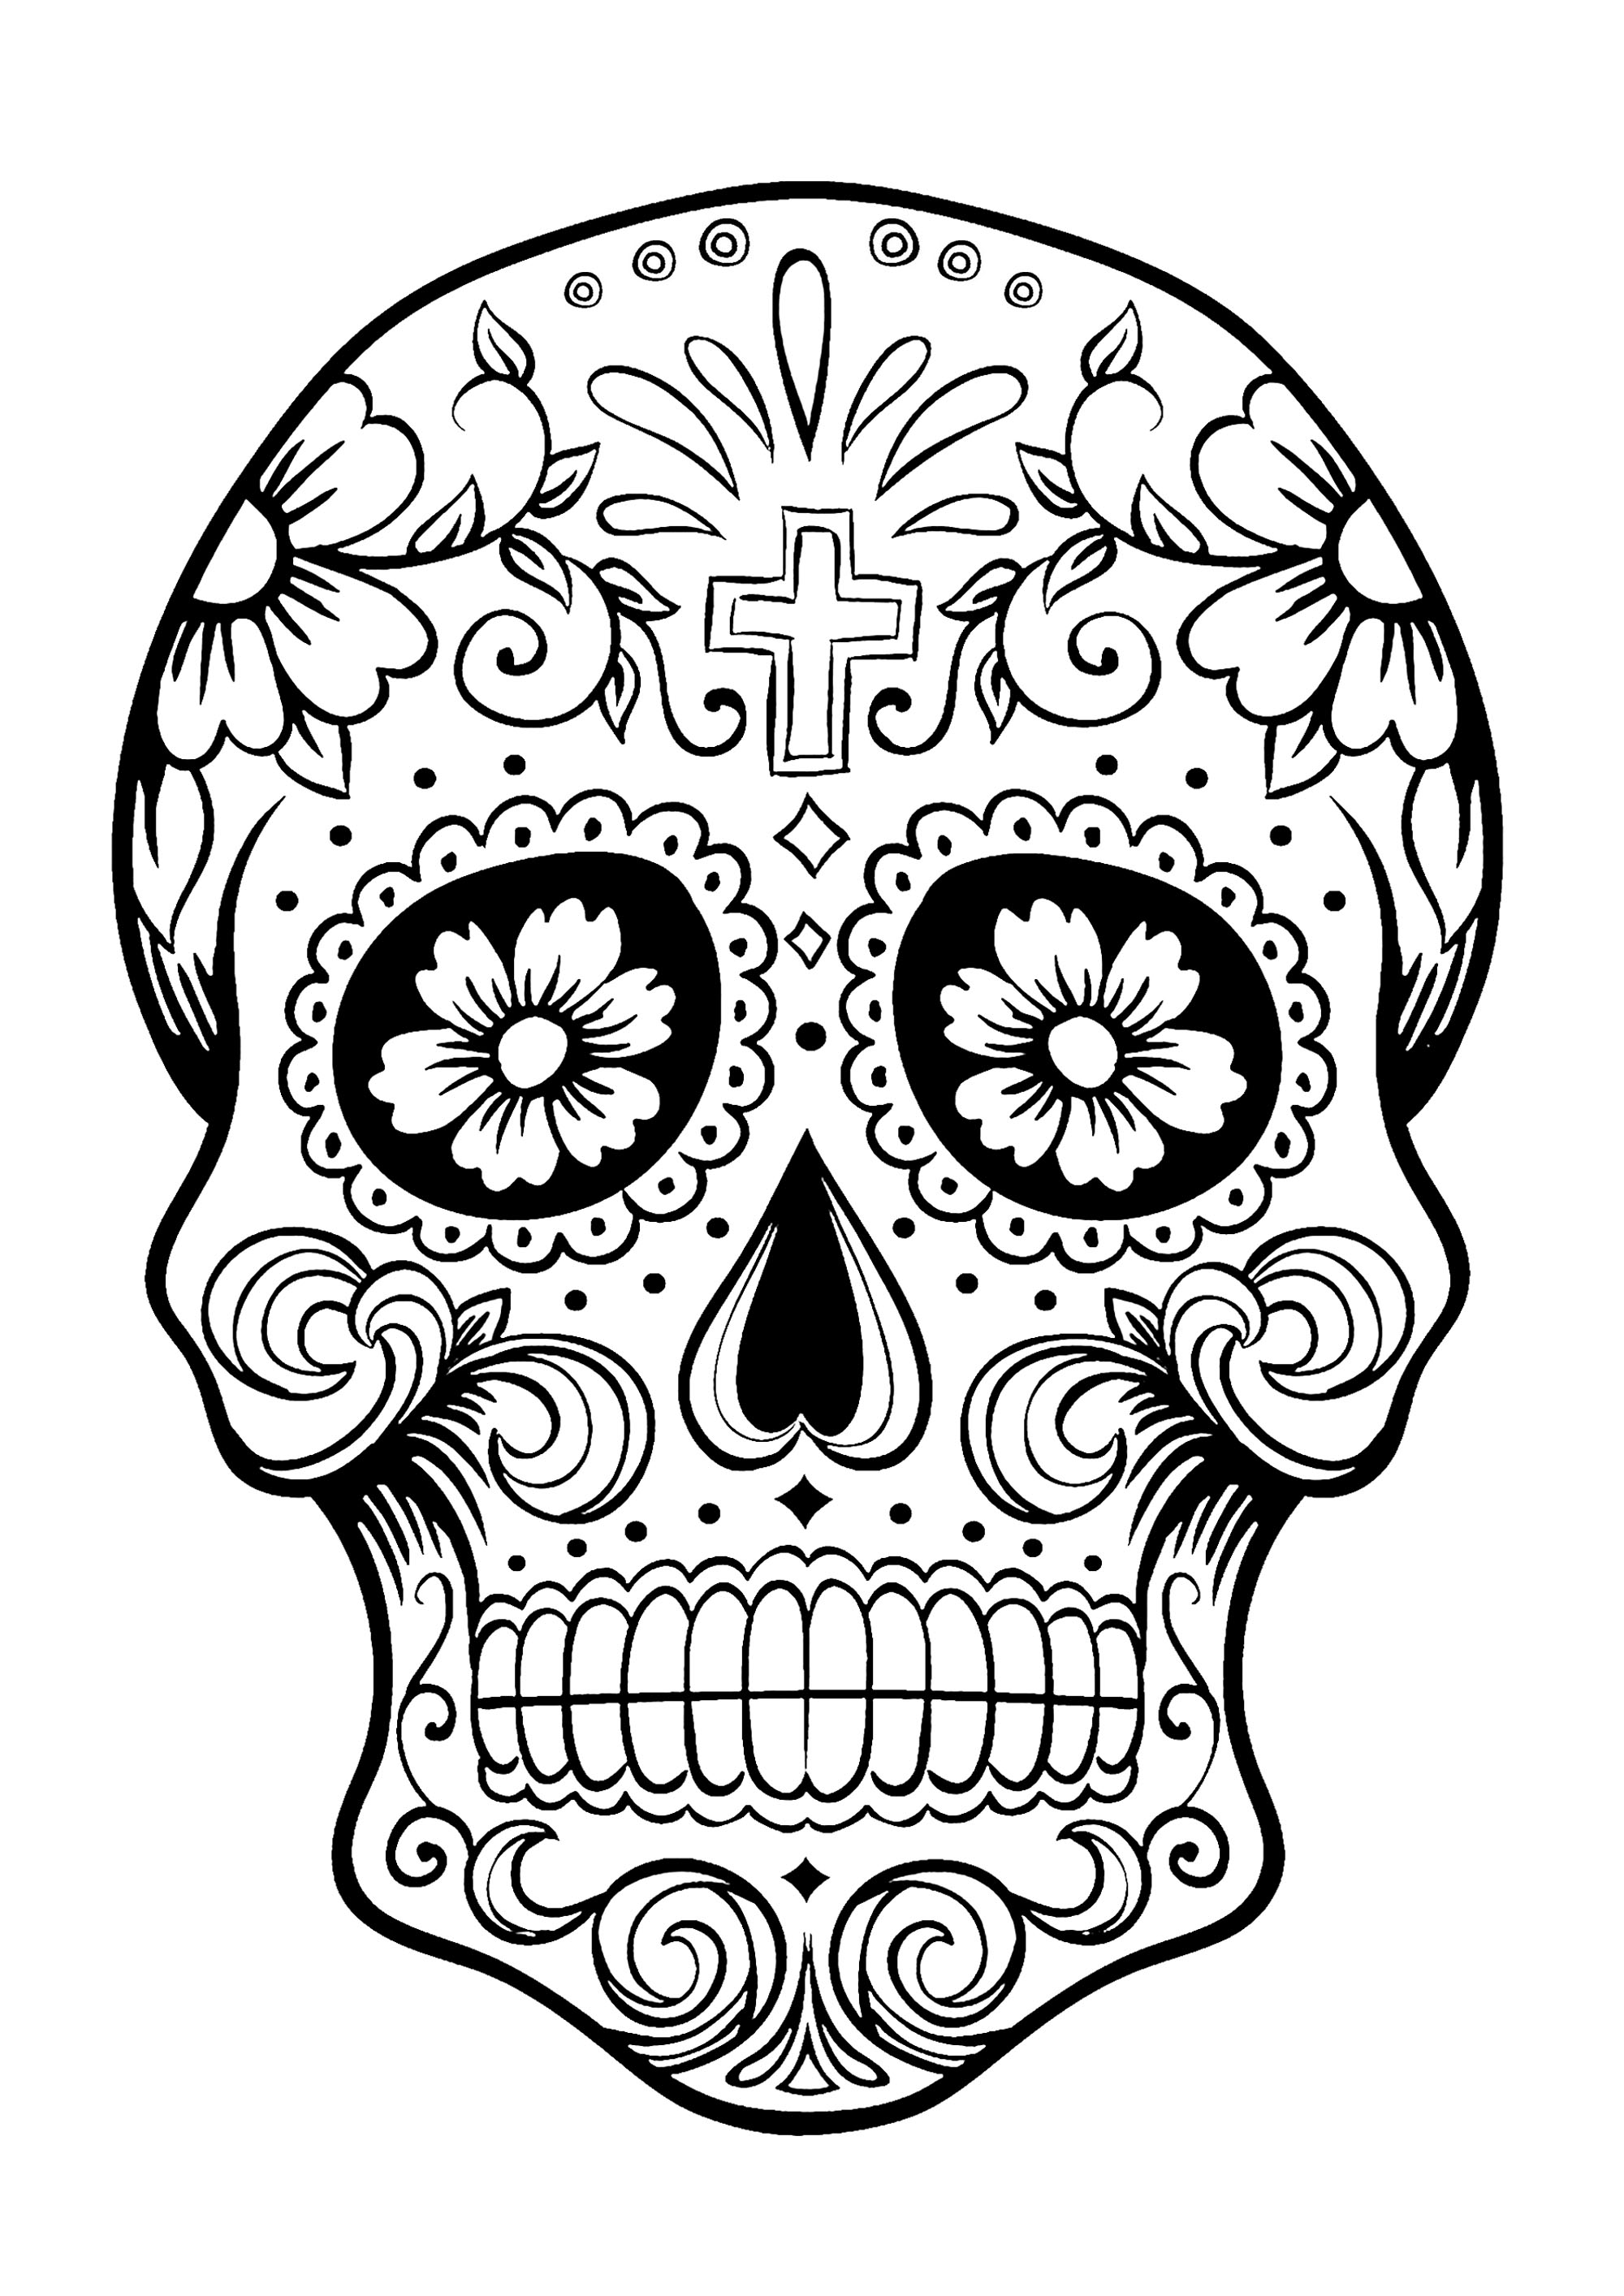 2000x2828 Dia De Los Muertos Skull Drawing Sugar Painting Wall Art Template